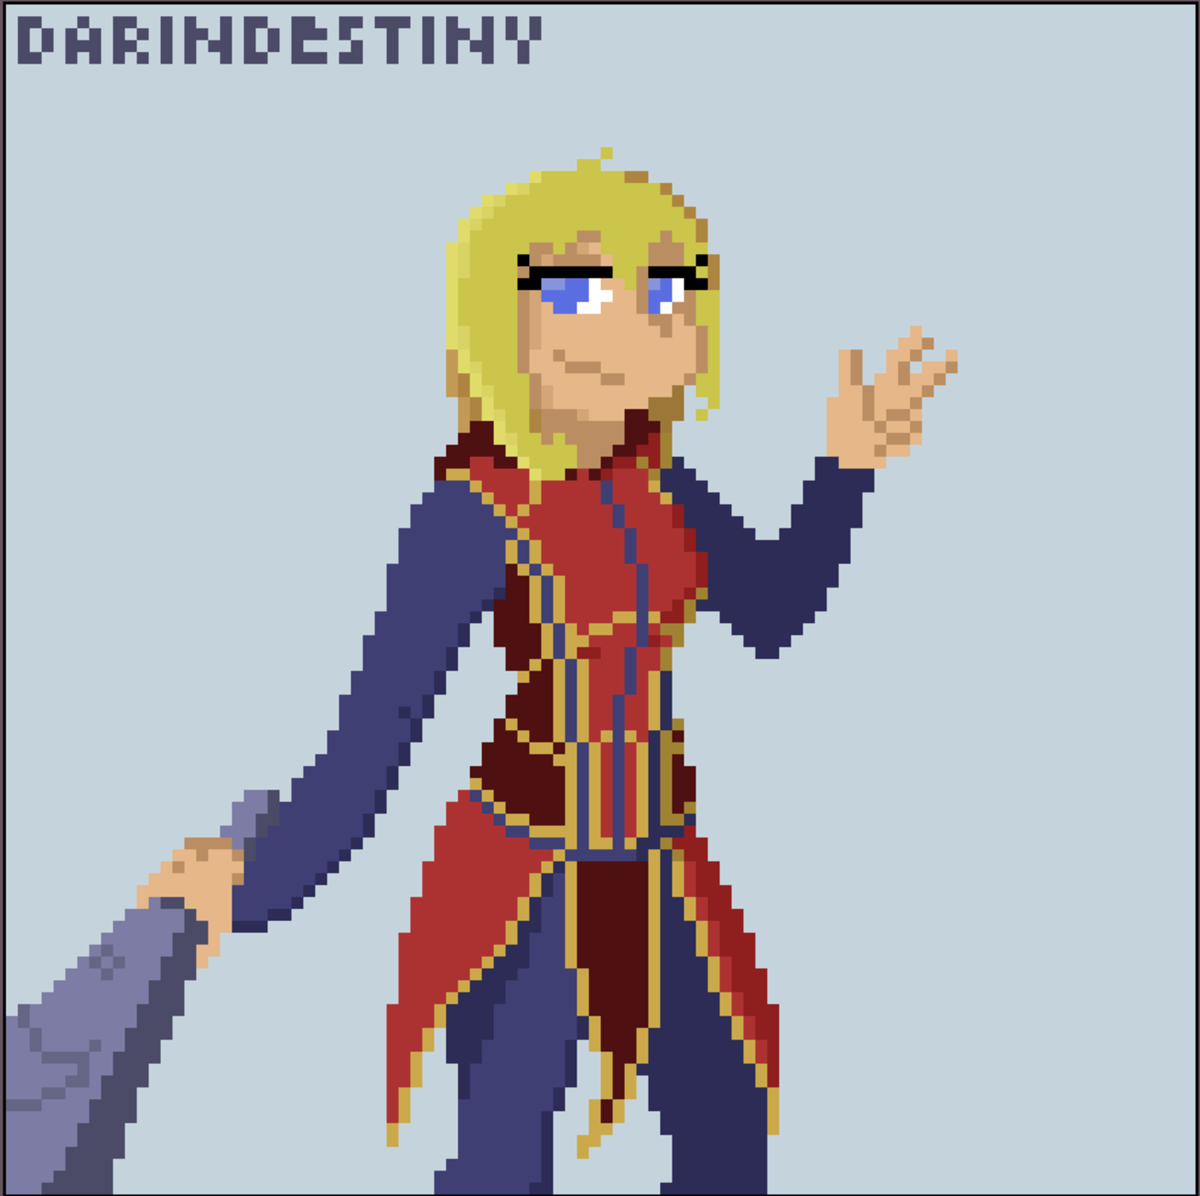 Nia Pixel Art. Just downloaded aseprite a pixel art program so i messed around with it a bit and threw my dnd OC, Nia, together using it join list: DaringDoodle